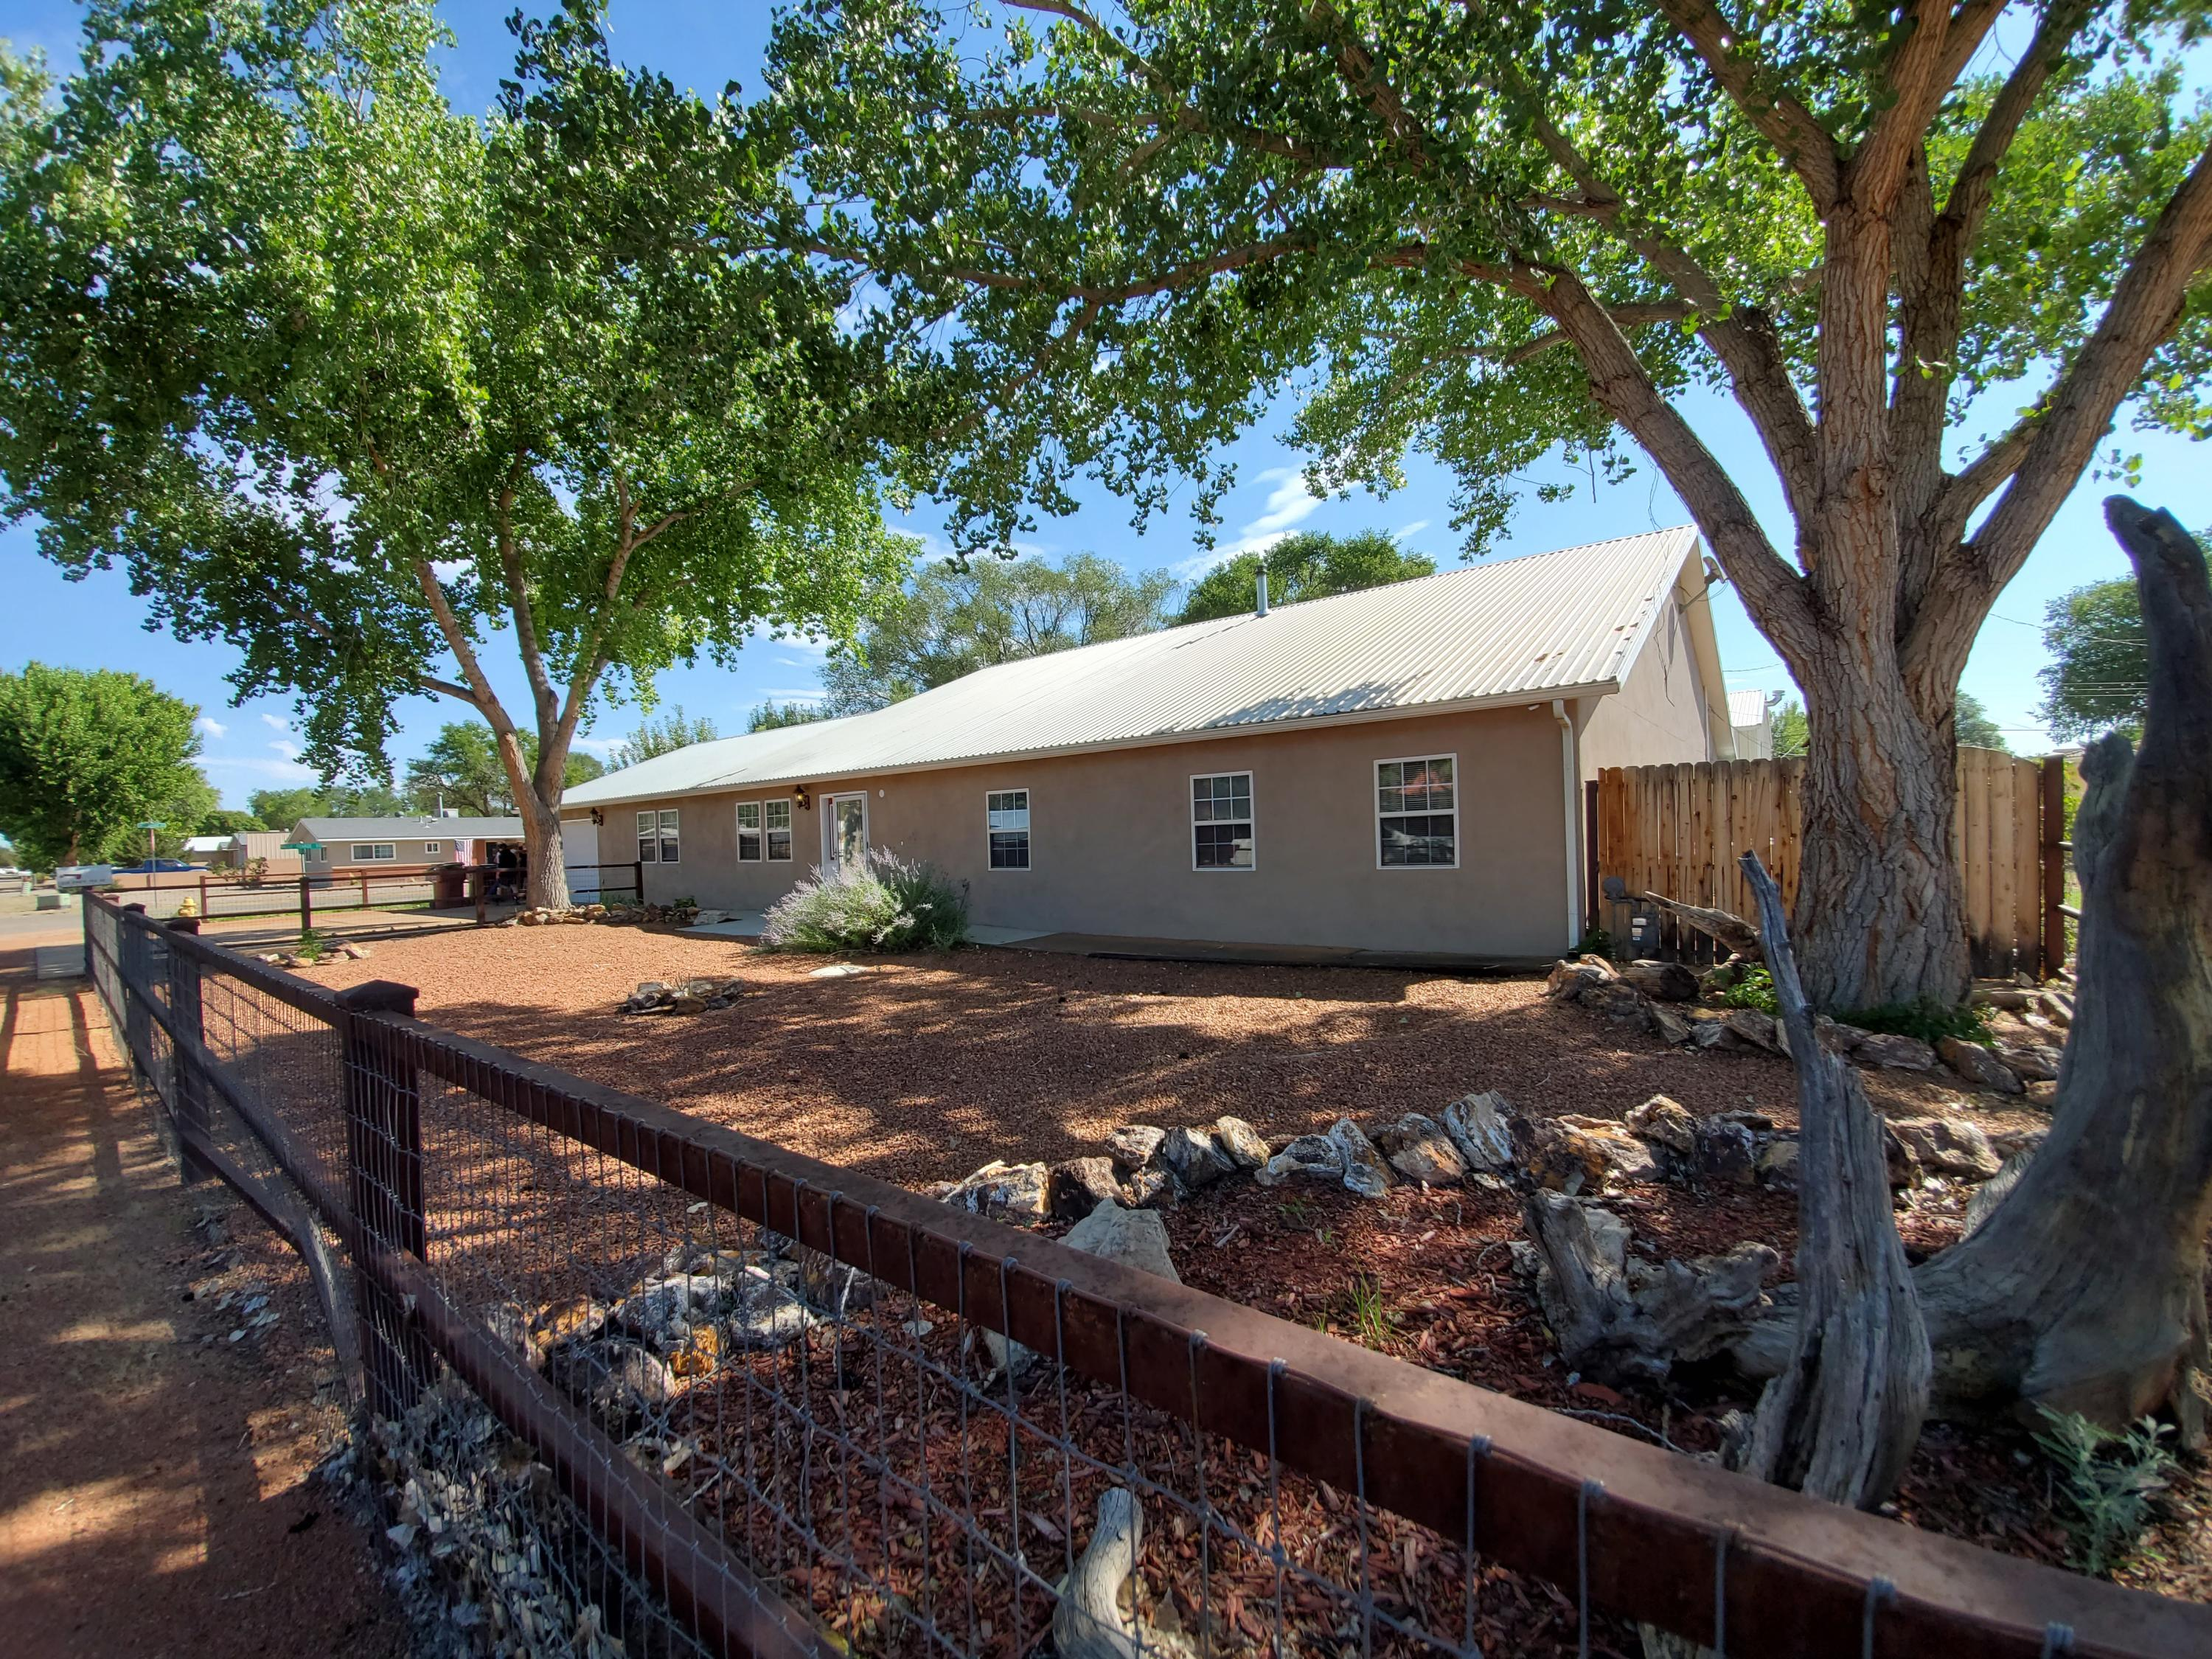 Spacious 3400 SF. custom ranch style home  on a half acre. 40x60 shop with 14x14 door & heating & air conditioning. Automatic Electric gate.  21x30 green house with 9x16 garden shed. Bring the farm with you, goat stalls, chicken coop & dog kennels. Outdoor patio with pond. Irrigation well. Alarm system. Radiant floor heat. Two commercial refrigerated cooling units. Heat on demand hot water heater. Water softener. Enjoy relaxing in hot tub in a 19X24 sunroom. Automatic sprinkler system. Laminate, & tile flooring. Large kitchen with hickory cabinets, wood stove & breakfast bar with an island. Recess lighting. Cozy living room with a vaulted ceiling. Bonus rooms are an office & mud room. Large attic. One car garage. Come & get away from the big city & make this fortress your forever home.